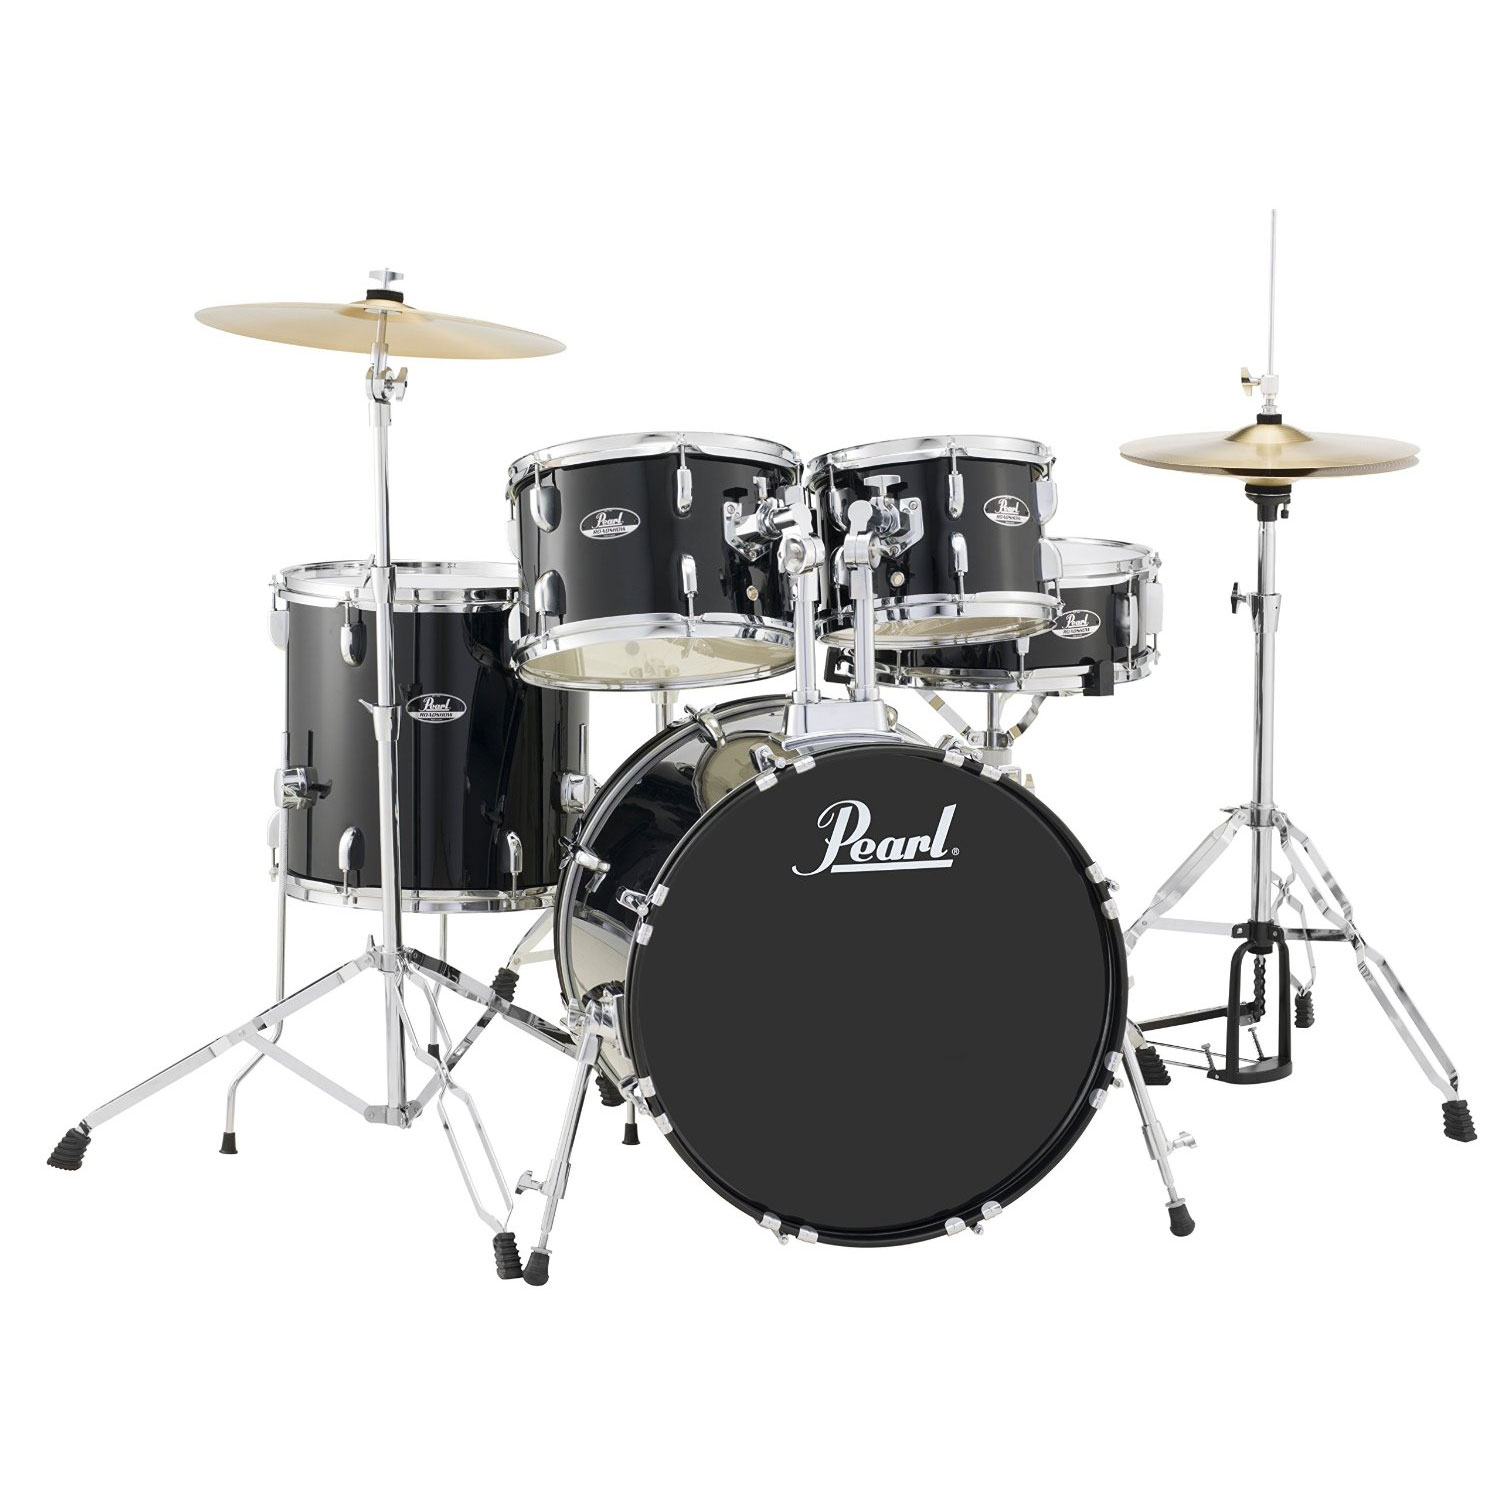 "Pearl Roadshow ""The 20"" 5-Piece Drum Set with Hardware and Cymbals (20"" Bass, 10/12/14"" Toms, 14"" Snare)"